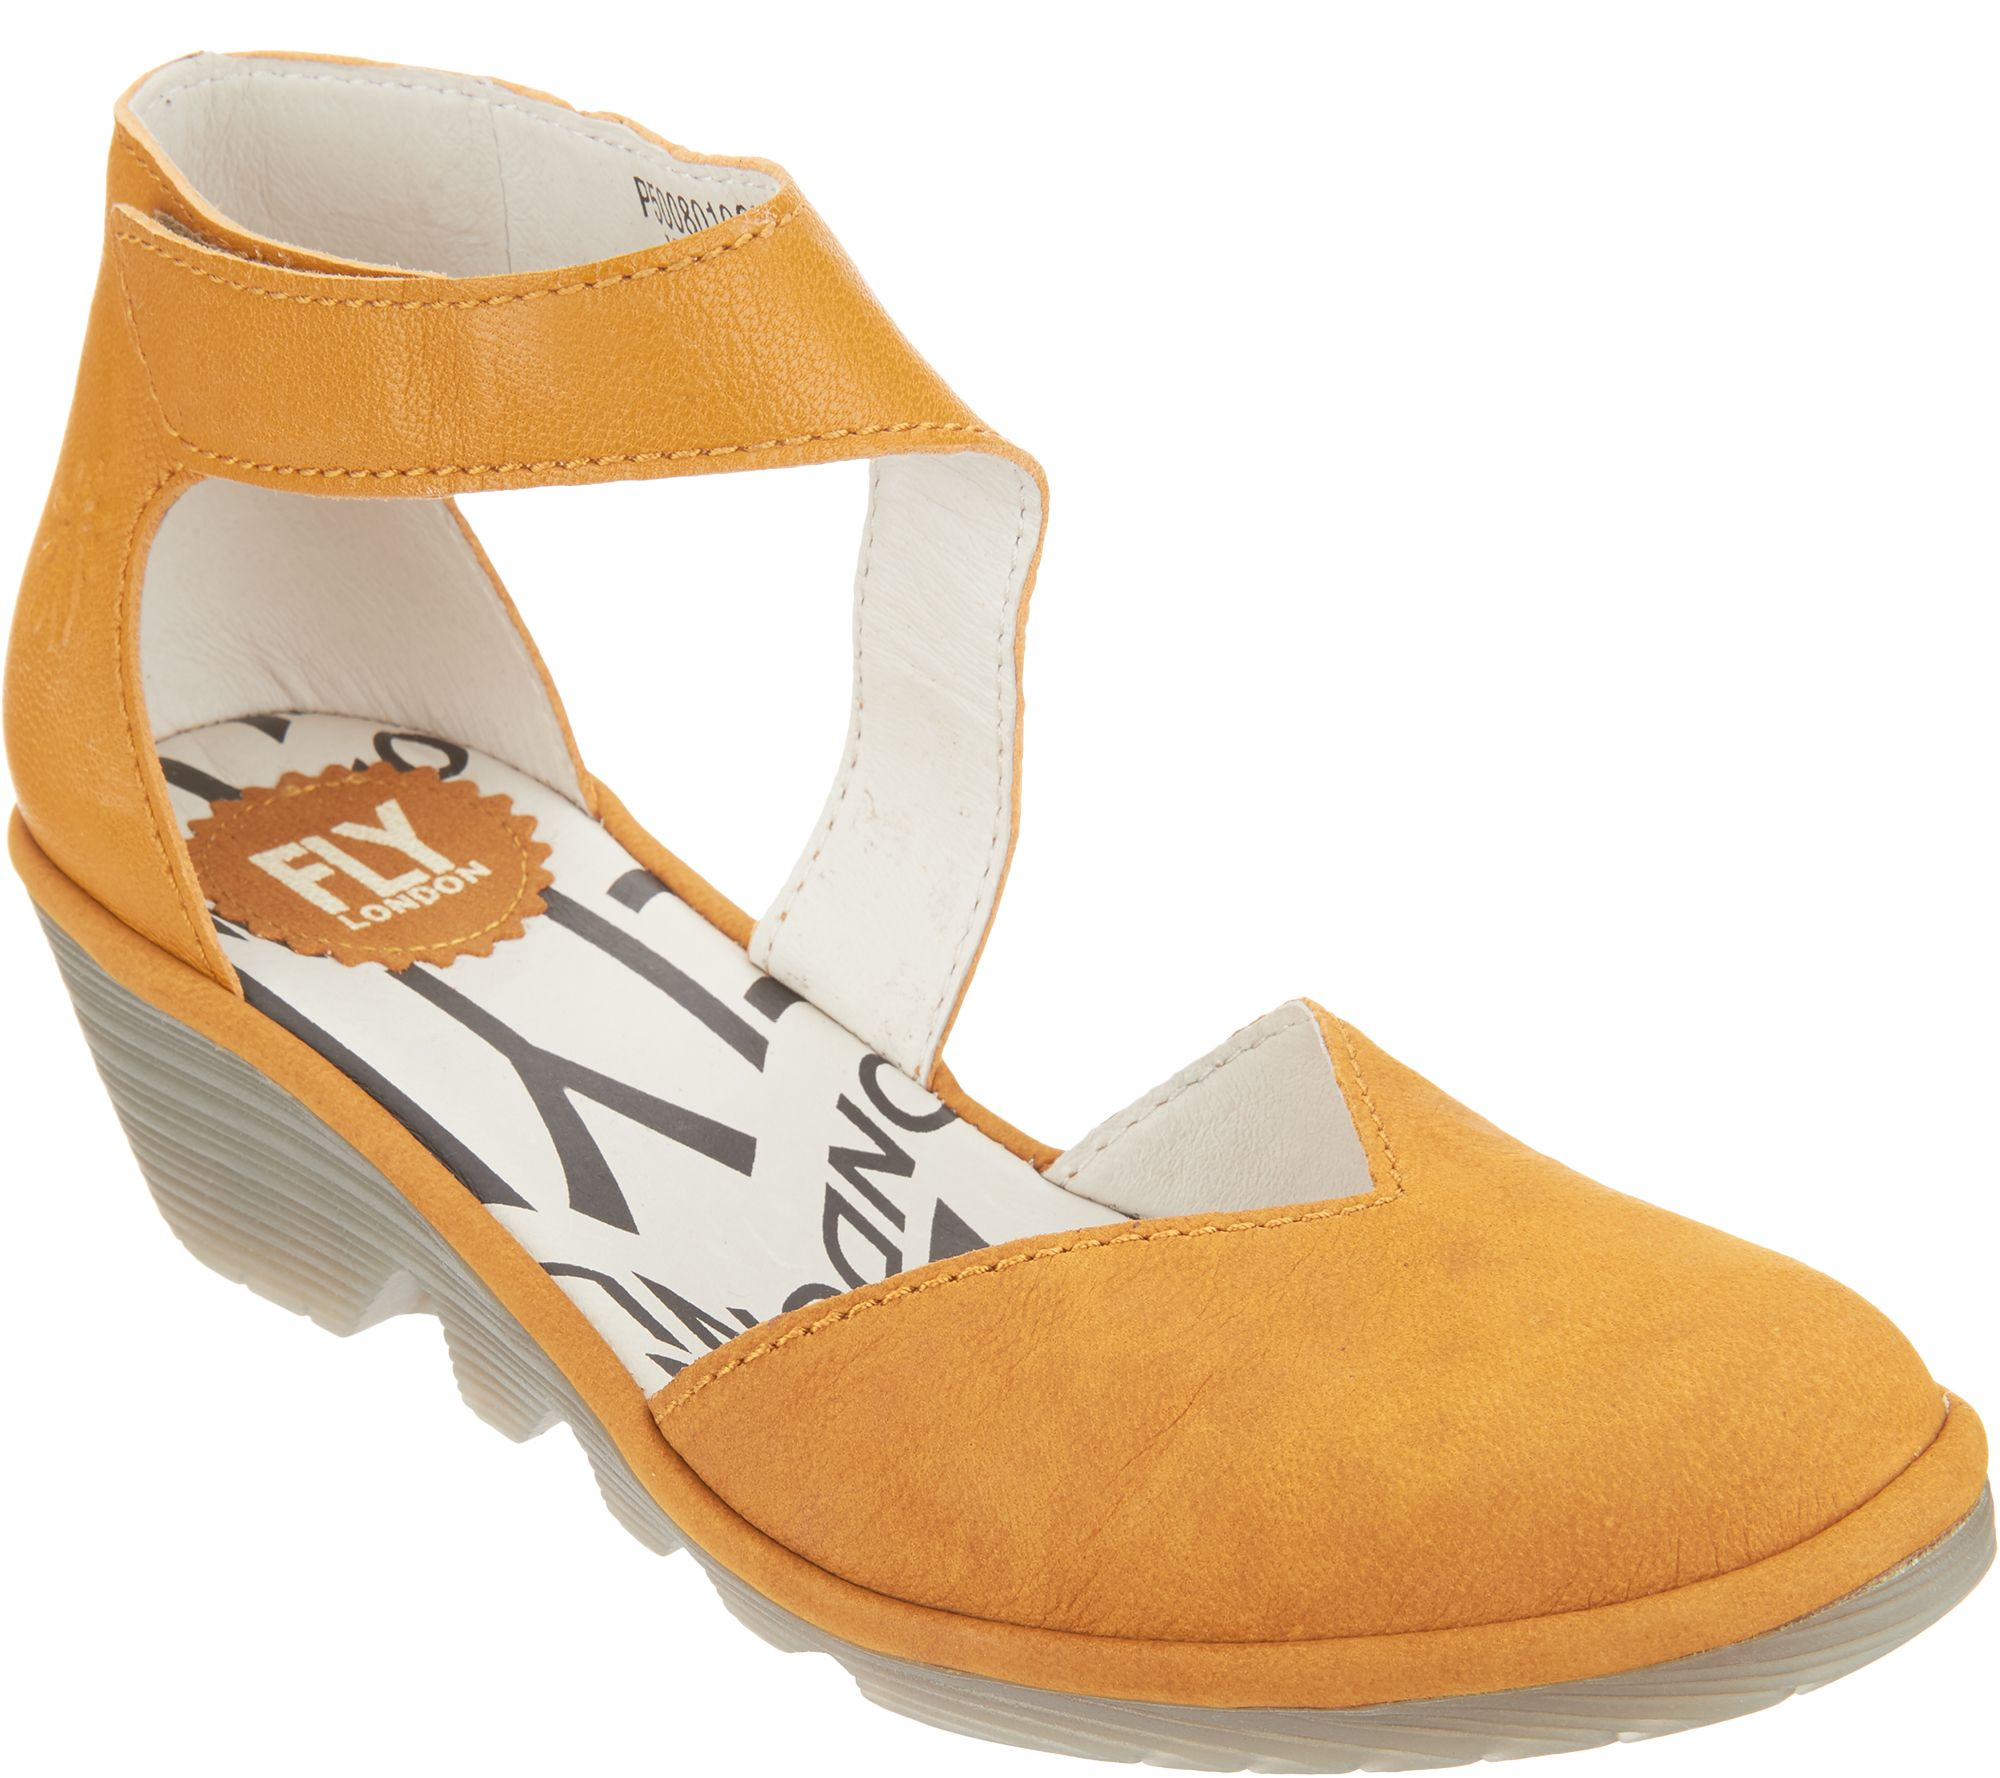 FLY London Leather Closed Toe Wedge - Pats discount best seller view cheap price lL8Ss